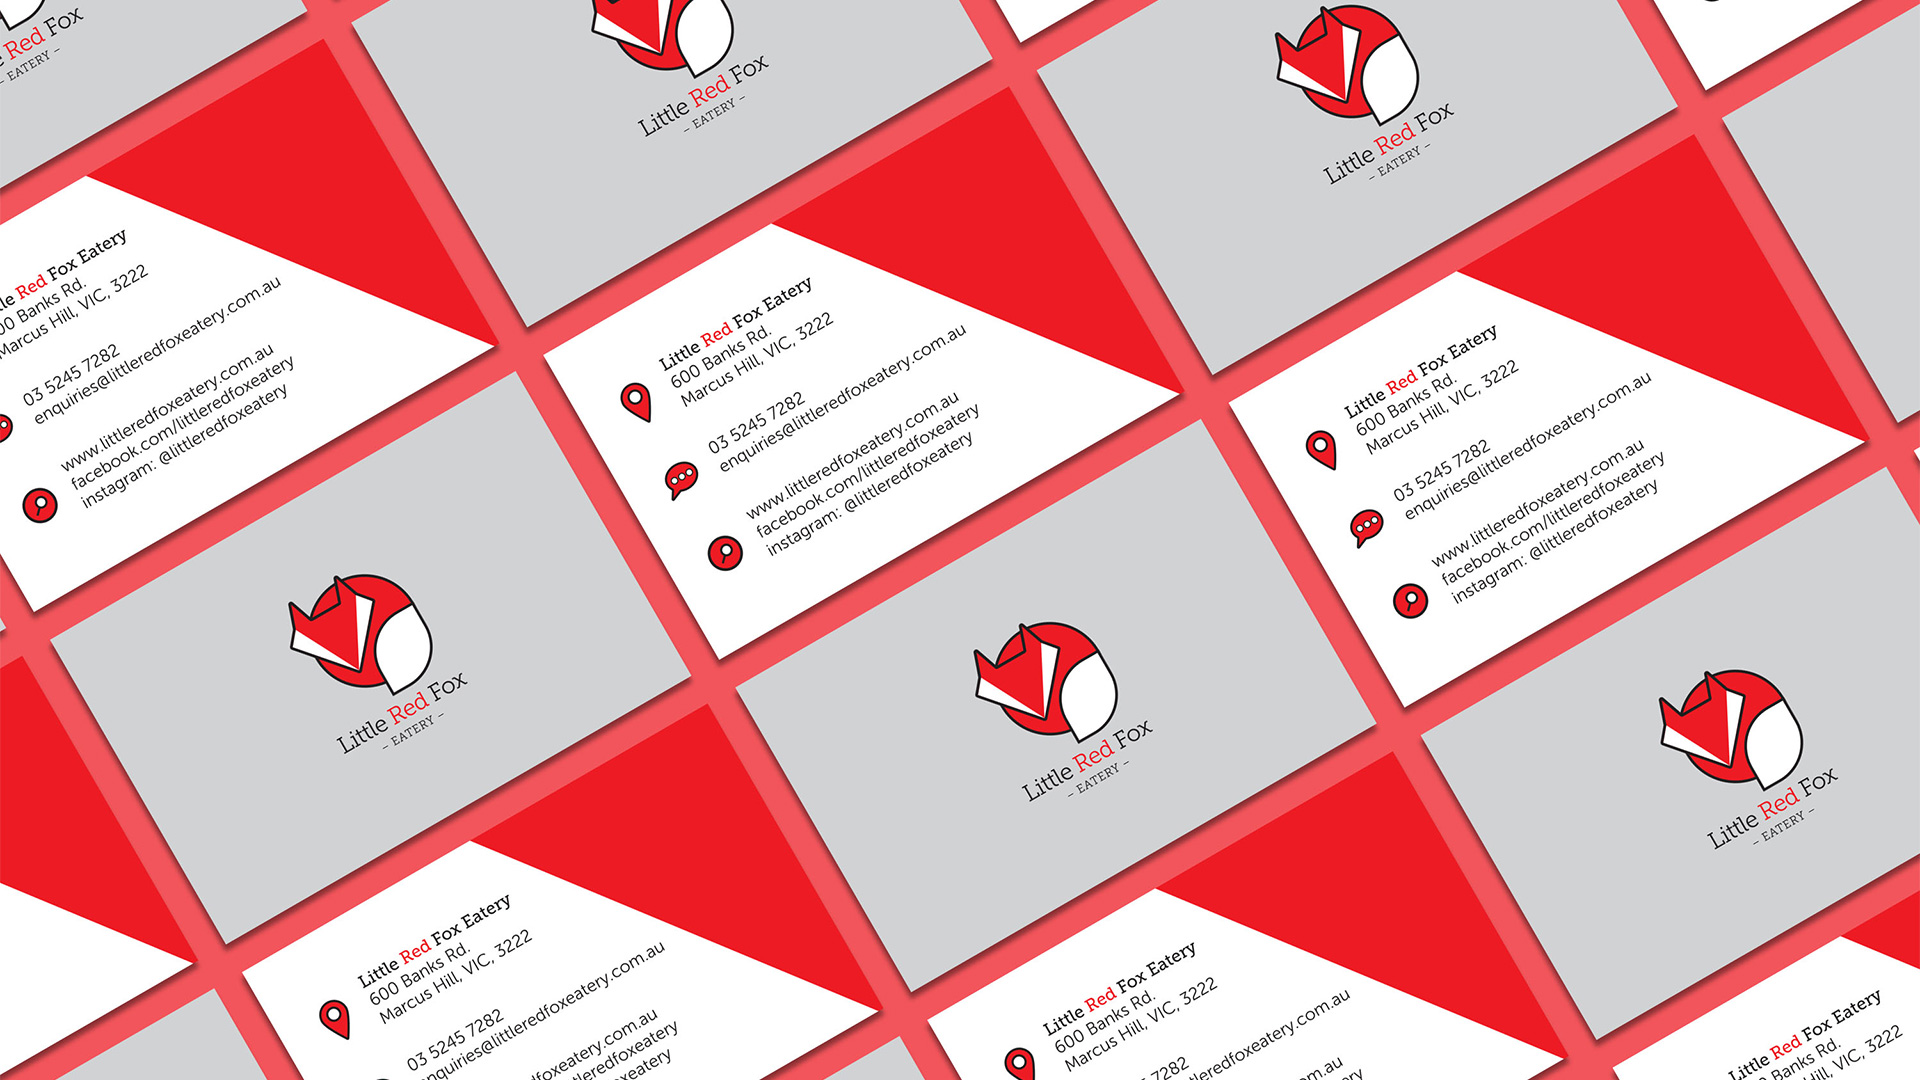 Little Red Fox Eatery business cards